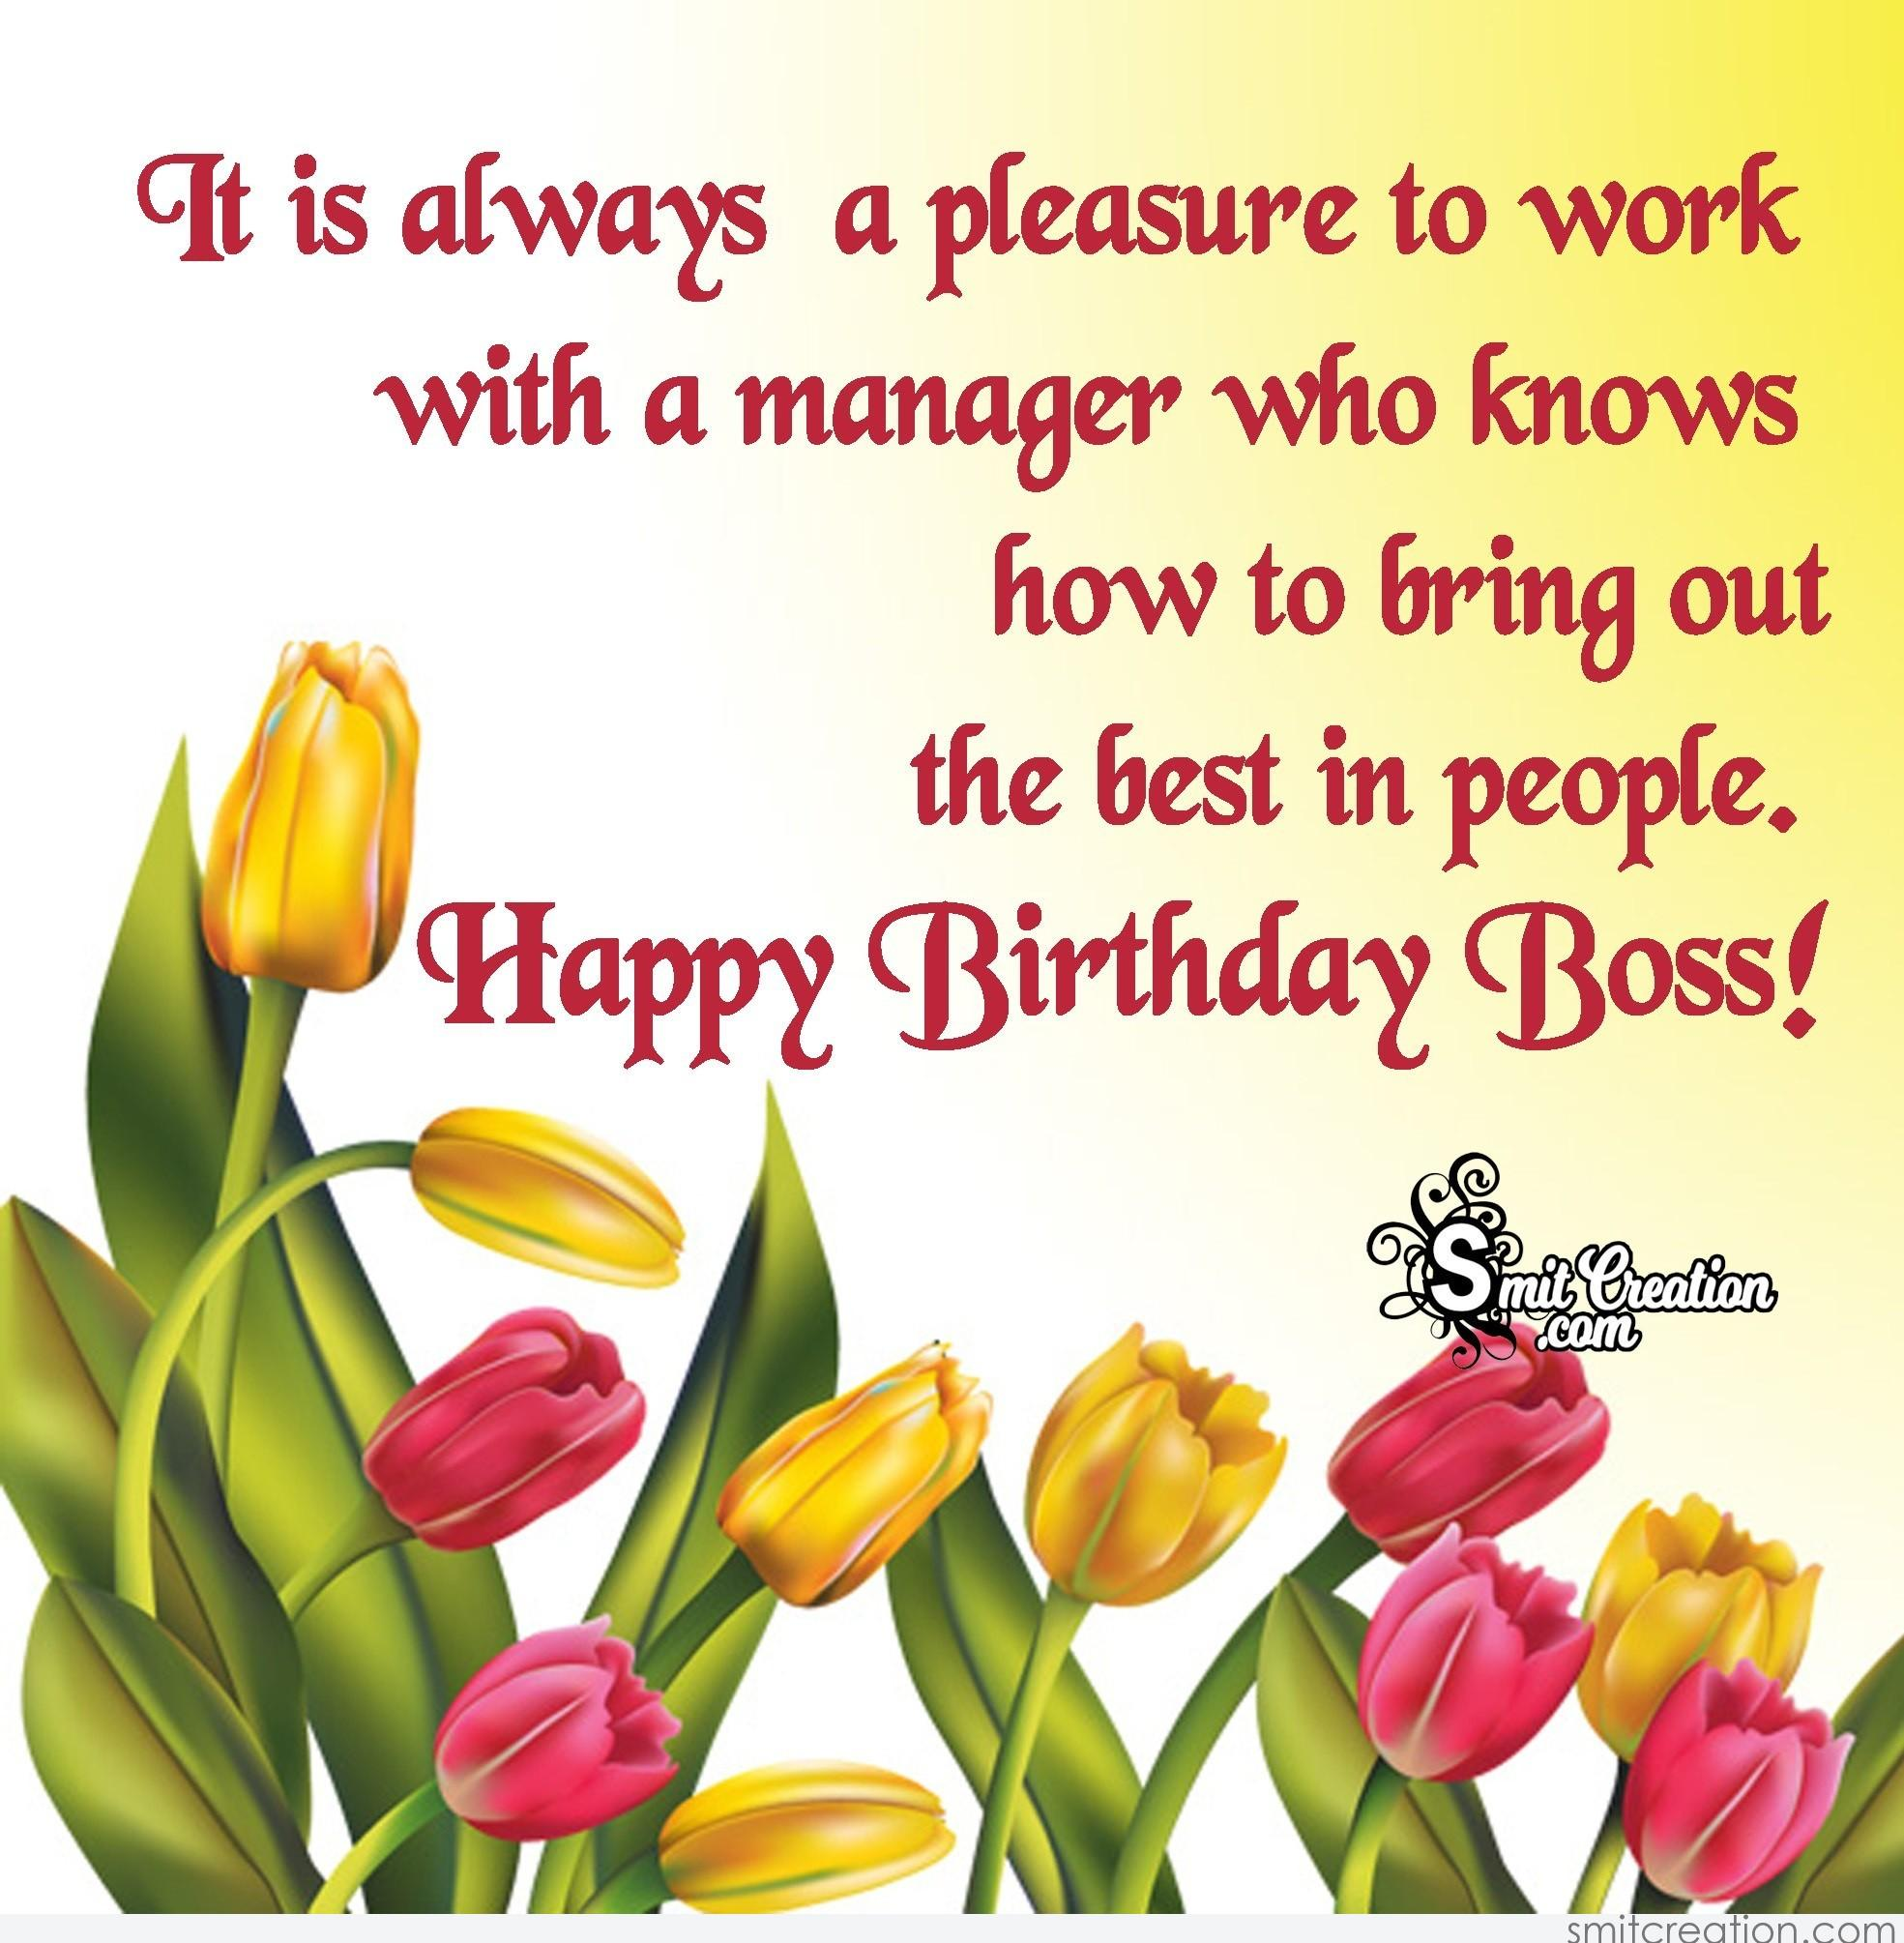 Birthday Wishes for Boss Pictures and Graphics SmitCreation – Happy Birthday Greetings to Boss